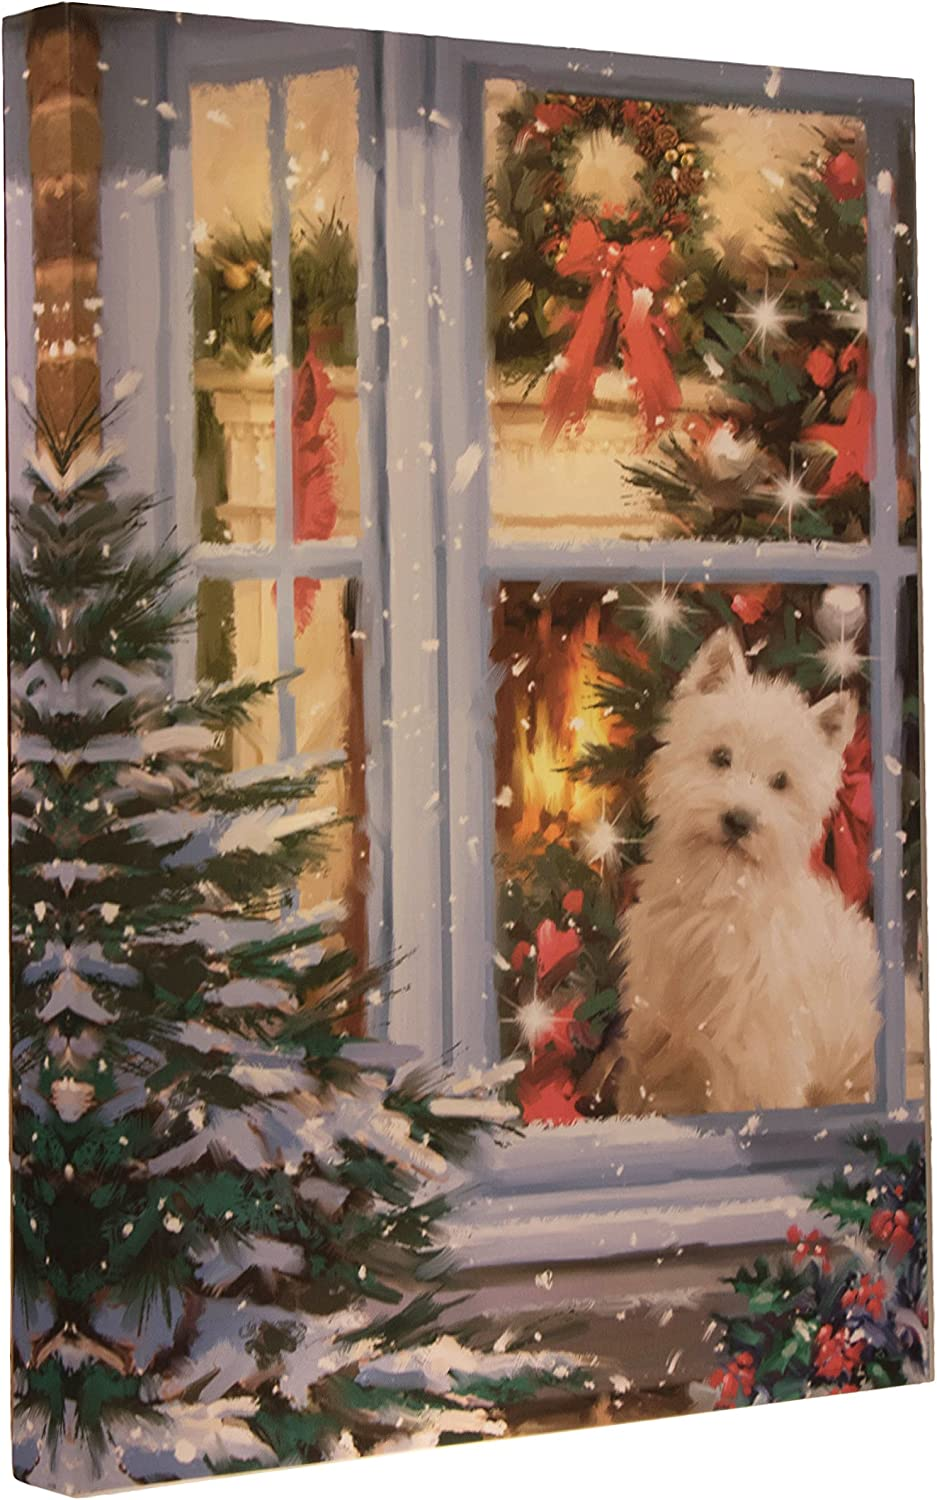 Puppy Canvas Wall Hanging We Year-end gift OFFer at cheap prices by LEDs Ho Bright Creations Clever